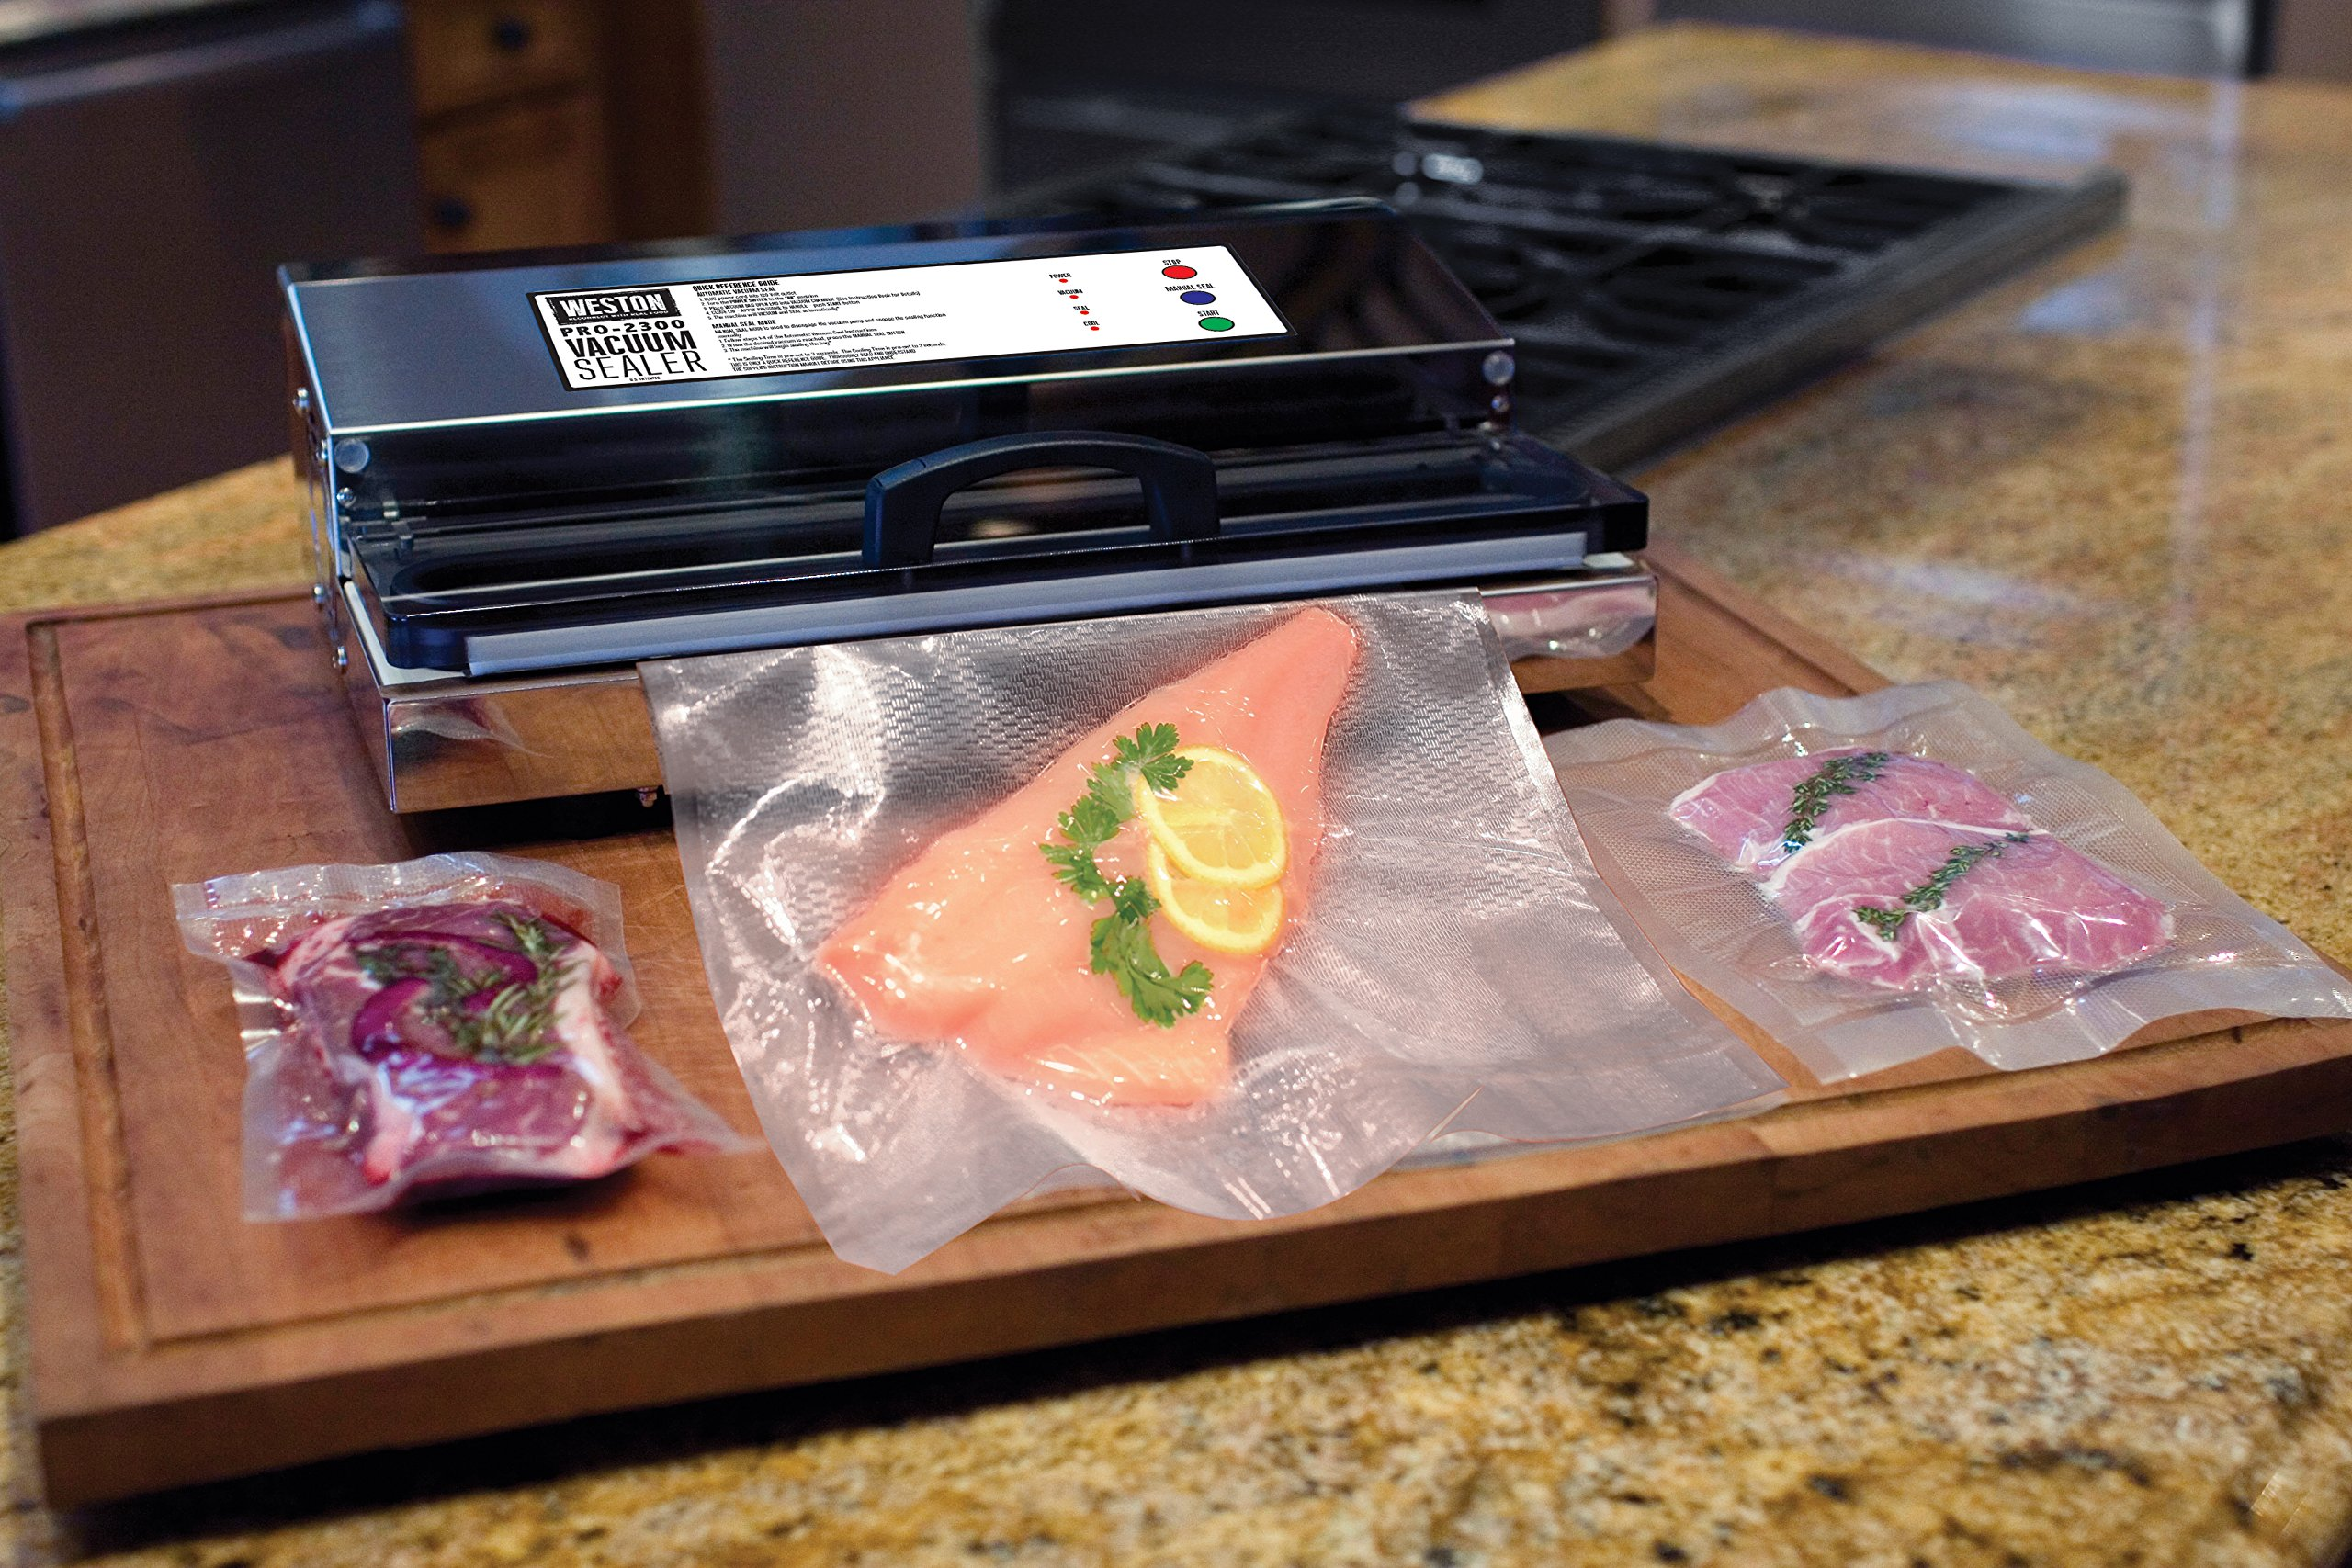 Weston Pro-2300 Commercial Grade Stainless Steel Vacuum Sealer (65-0201), Double Piston Pump by Weston (Image #7)